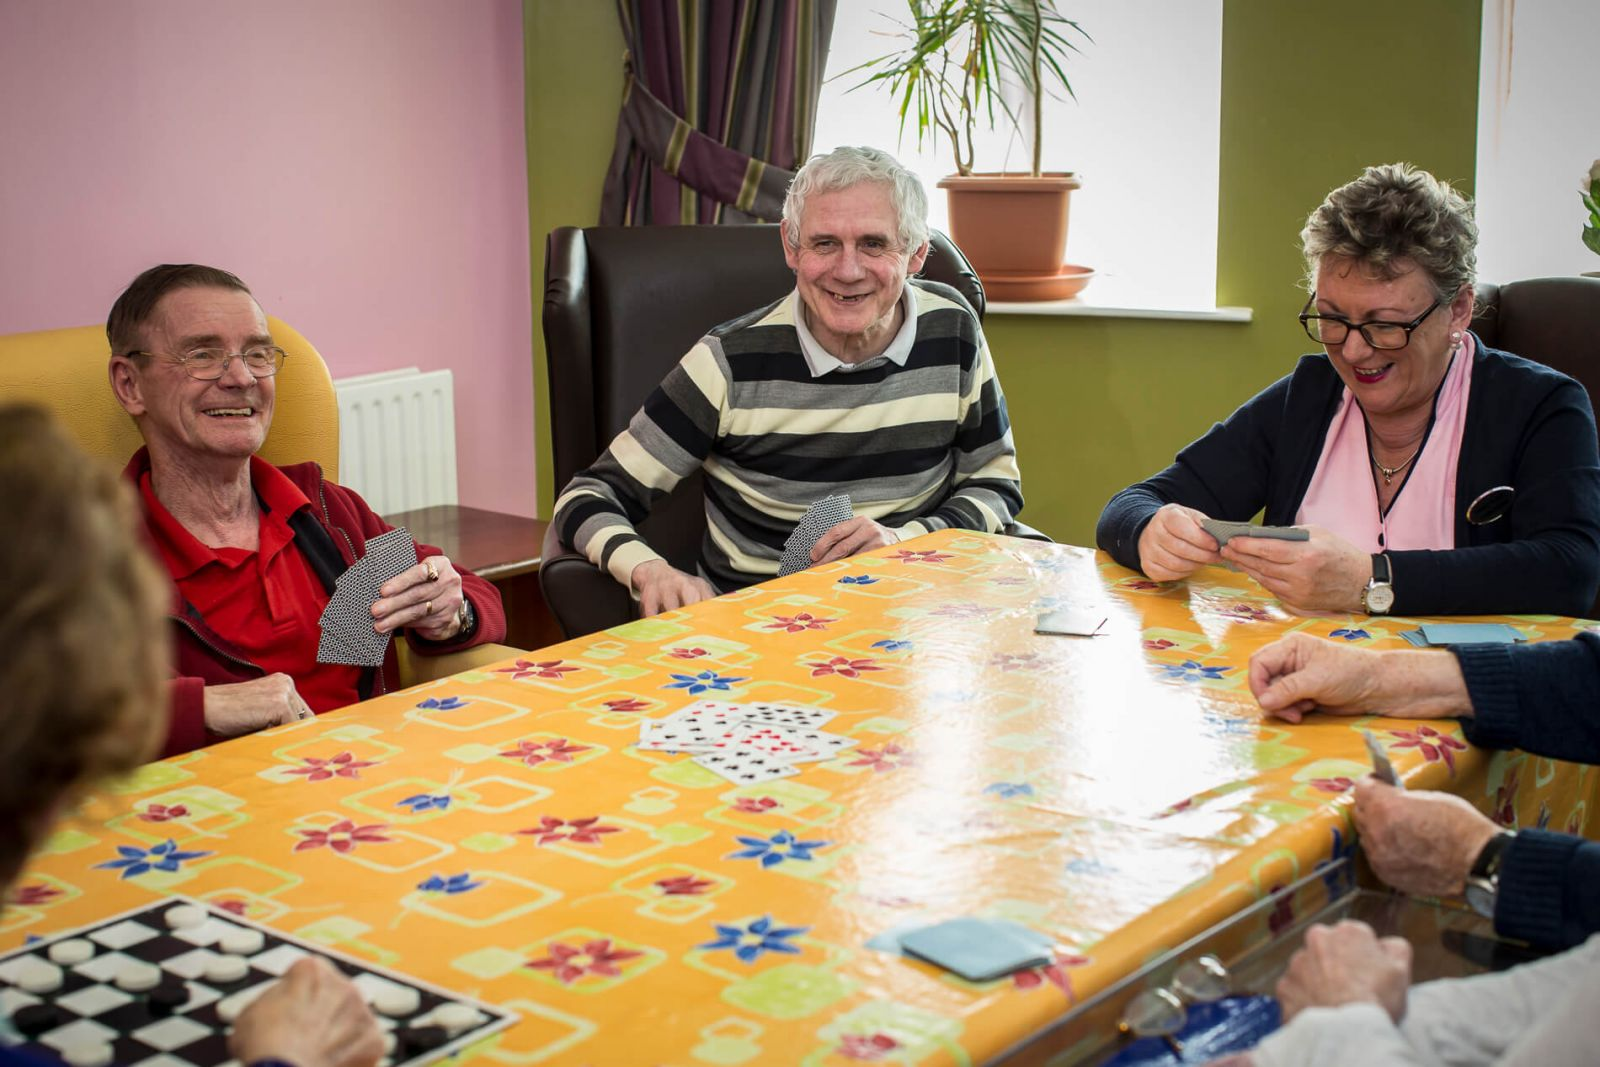 staff playing cards in a recreation room